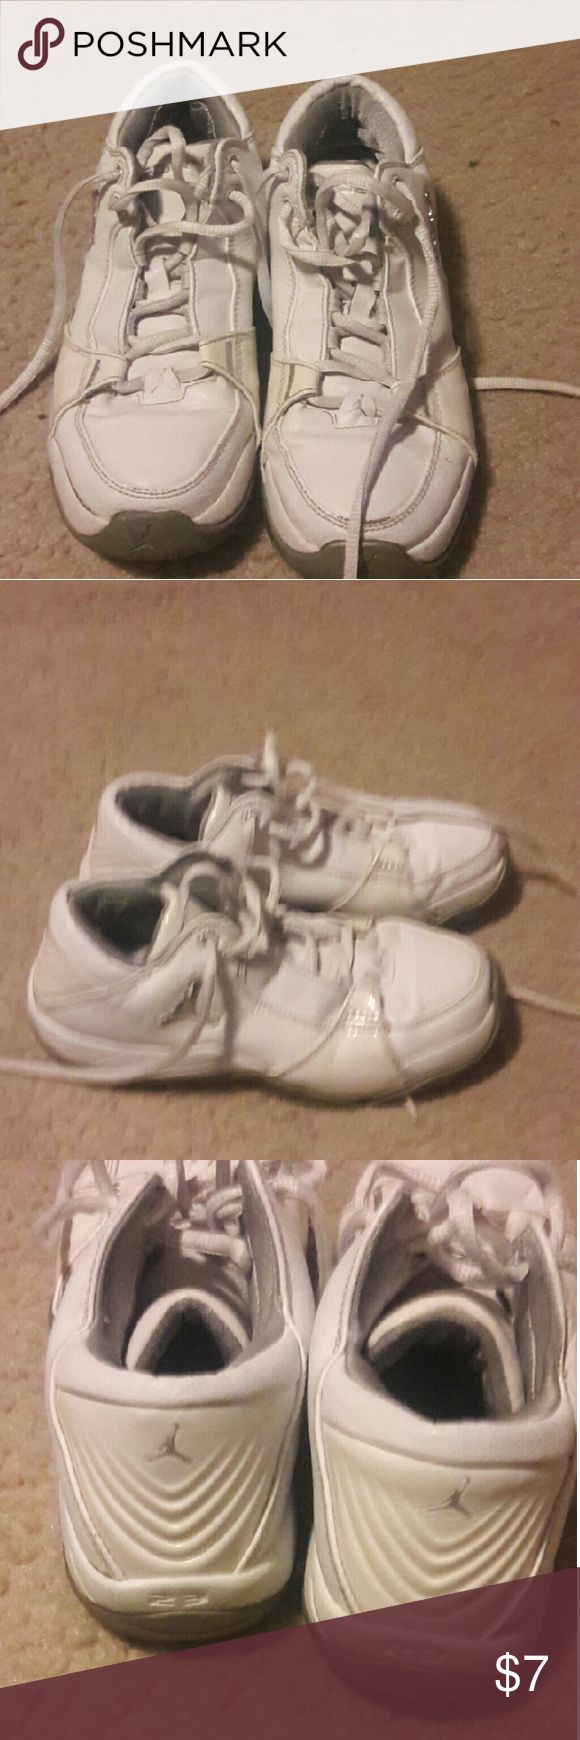 Boys Jordan tennis shoe Comfortable White Jordan's with creasing and some yellow due to being packed up and left side sole is loose. Jordan Shoes Sneakers